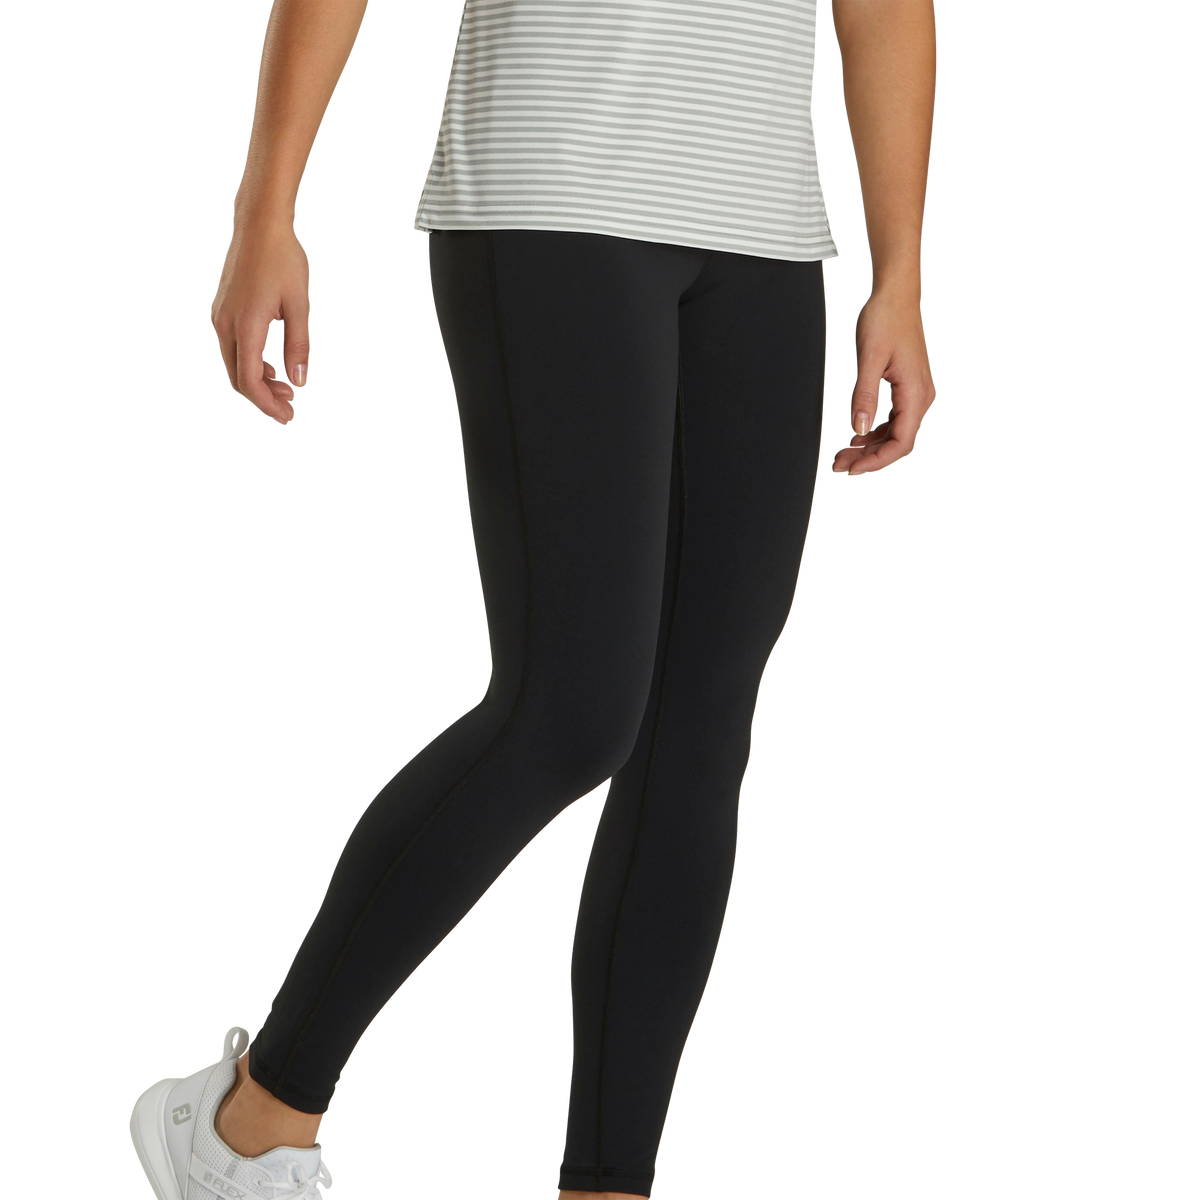 Ankle Length Leggings Women